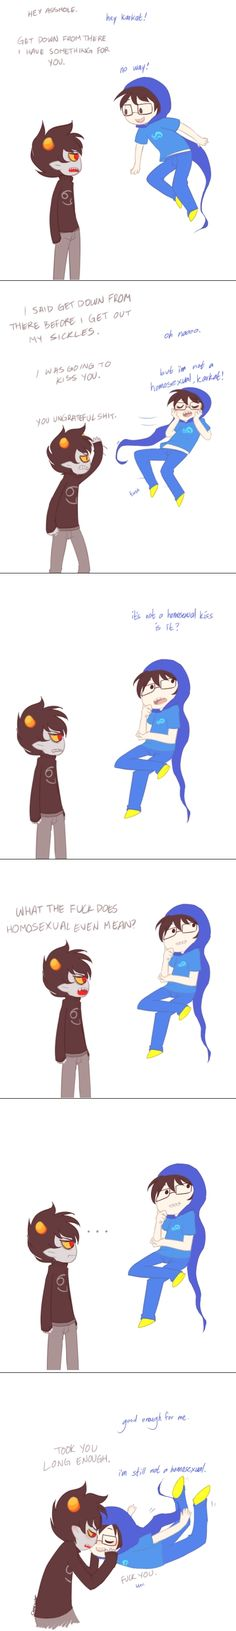 """Tags: Anime, Swearing, Homestuck, Karkat Vantas, God Tier, John Egbert"" He whispered, ""Later"" LOL fangirling."